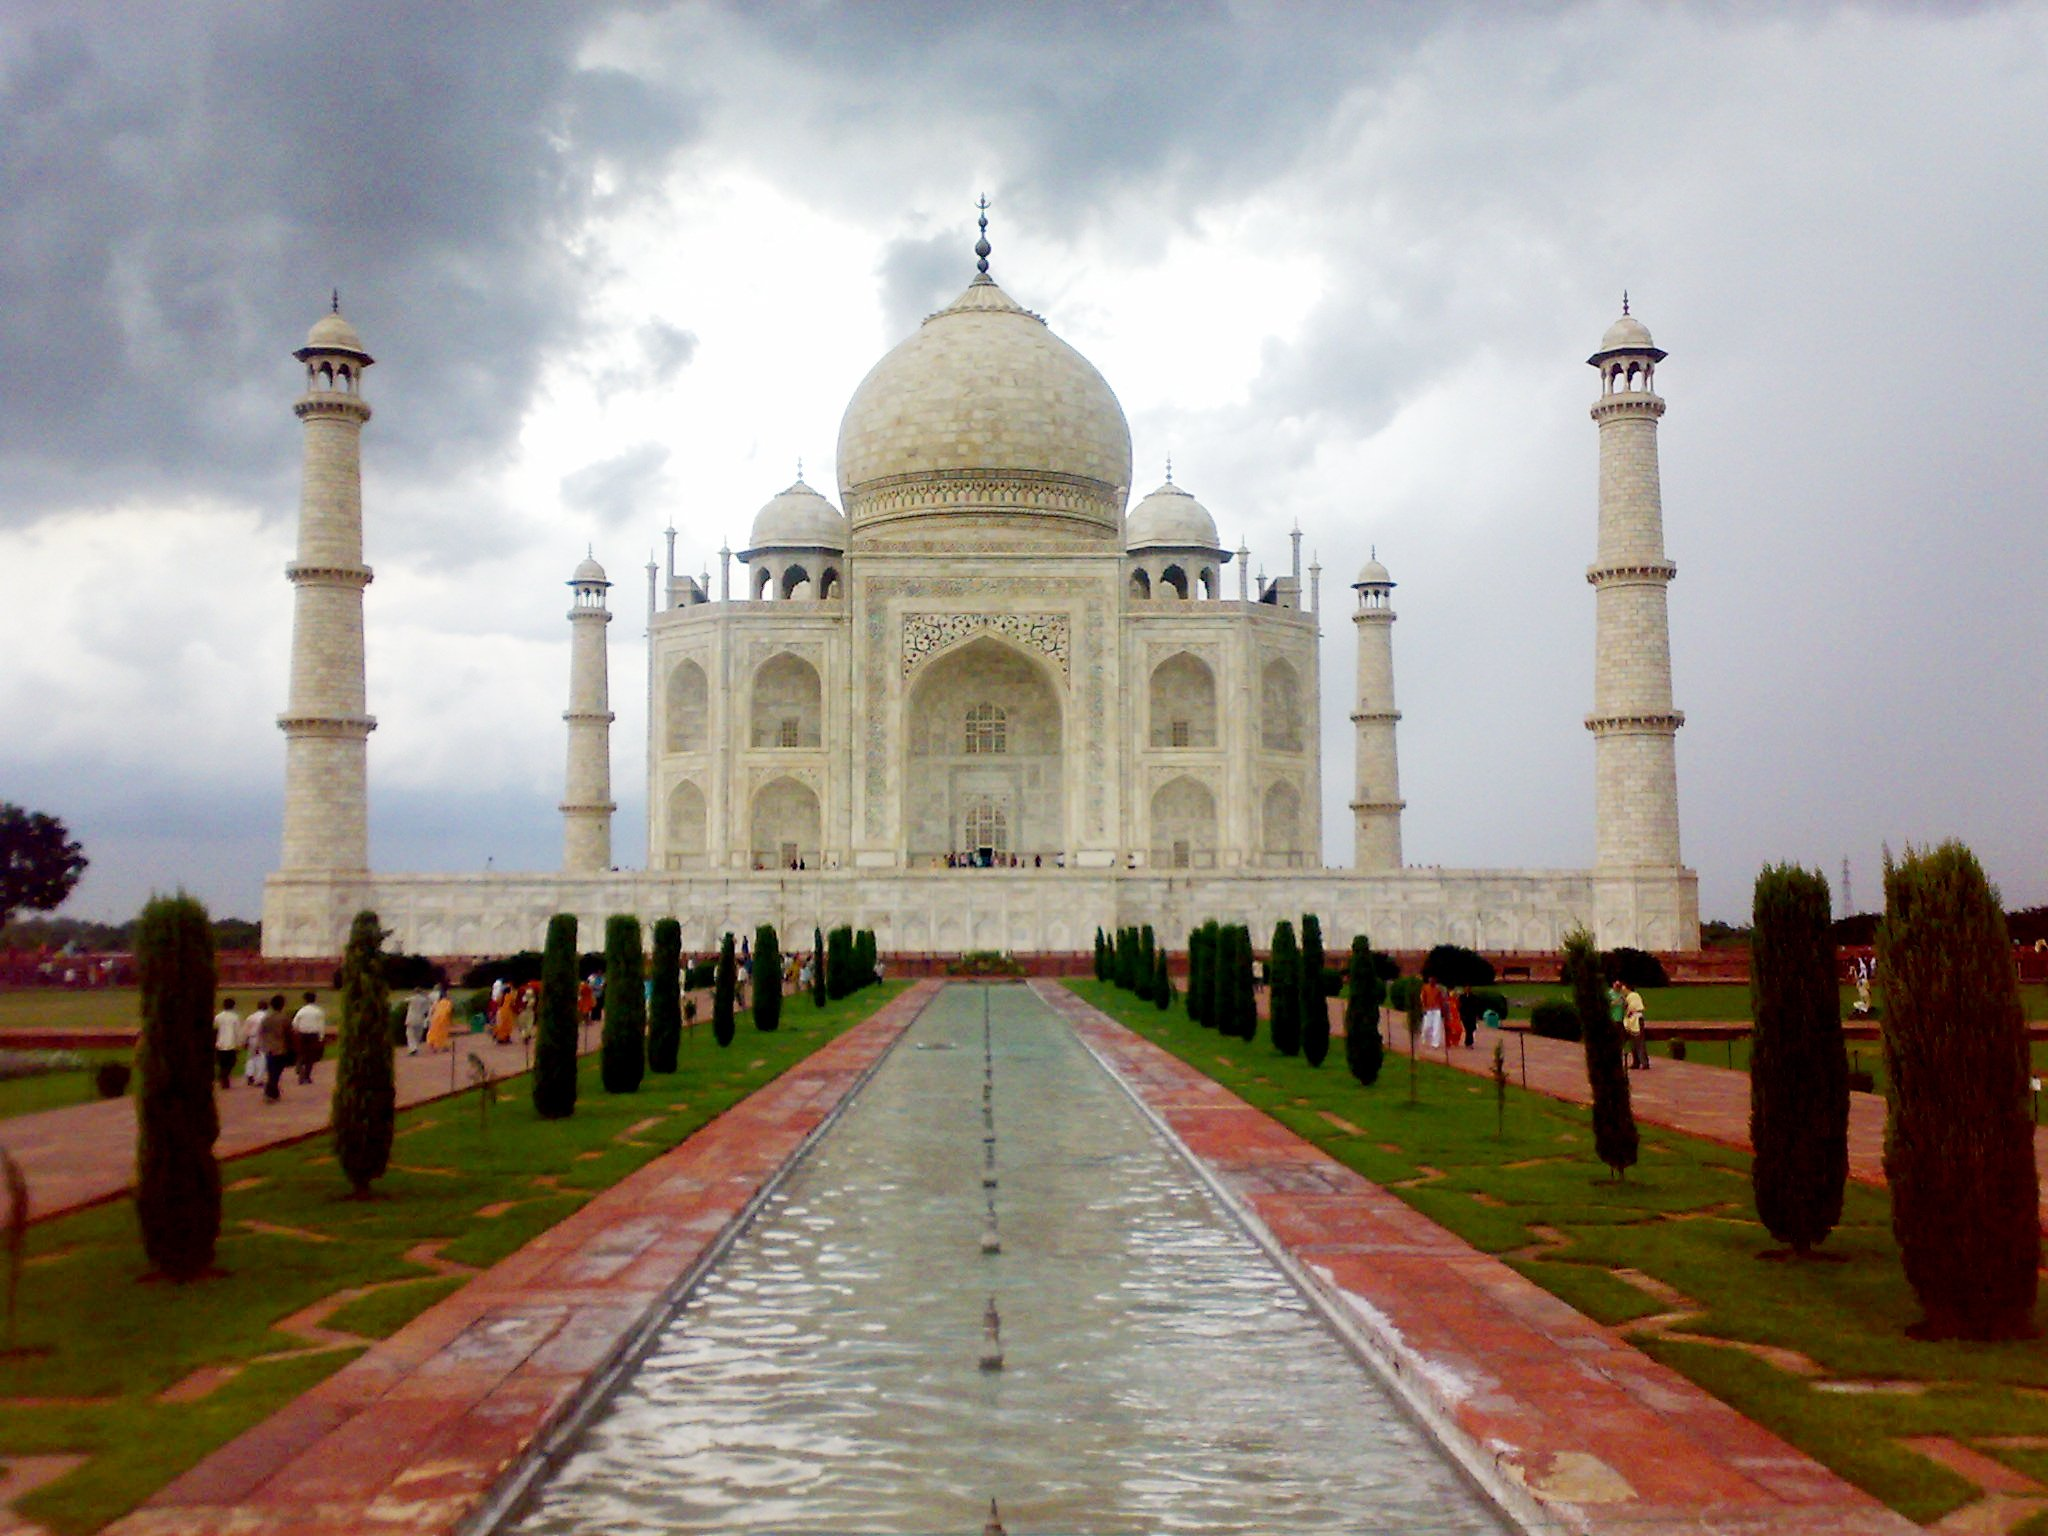 Taj Mahal, India- beautifully designed architectural structures